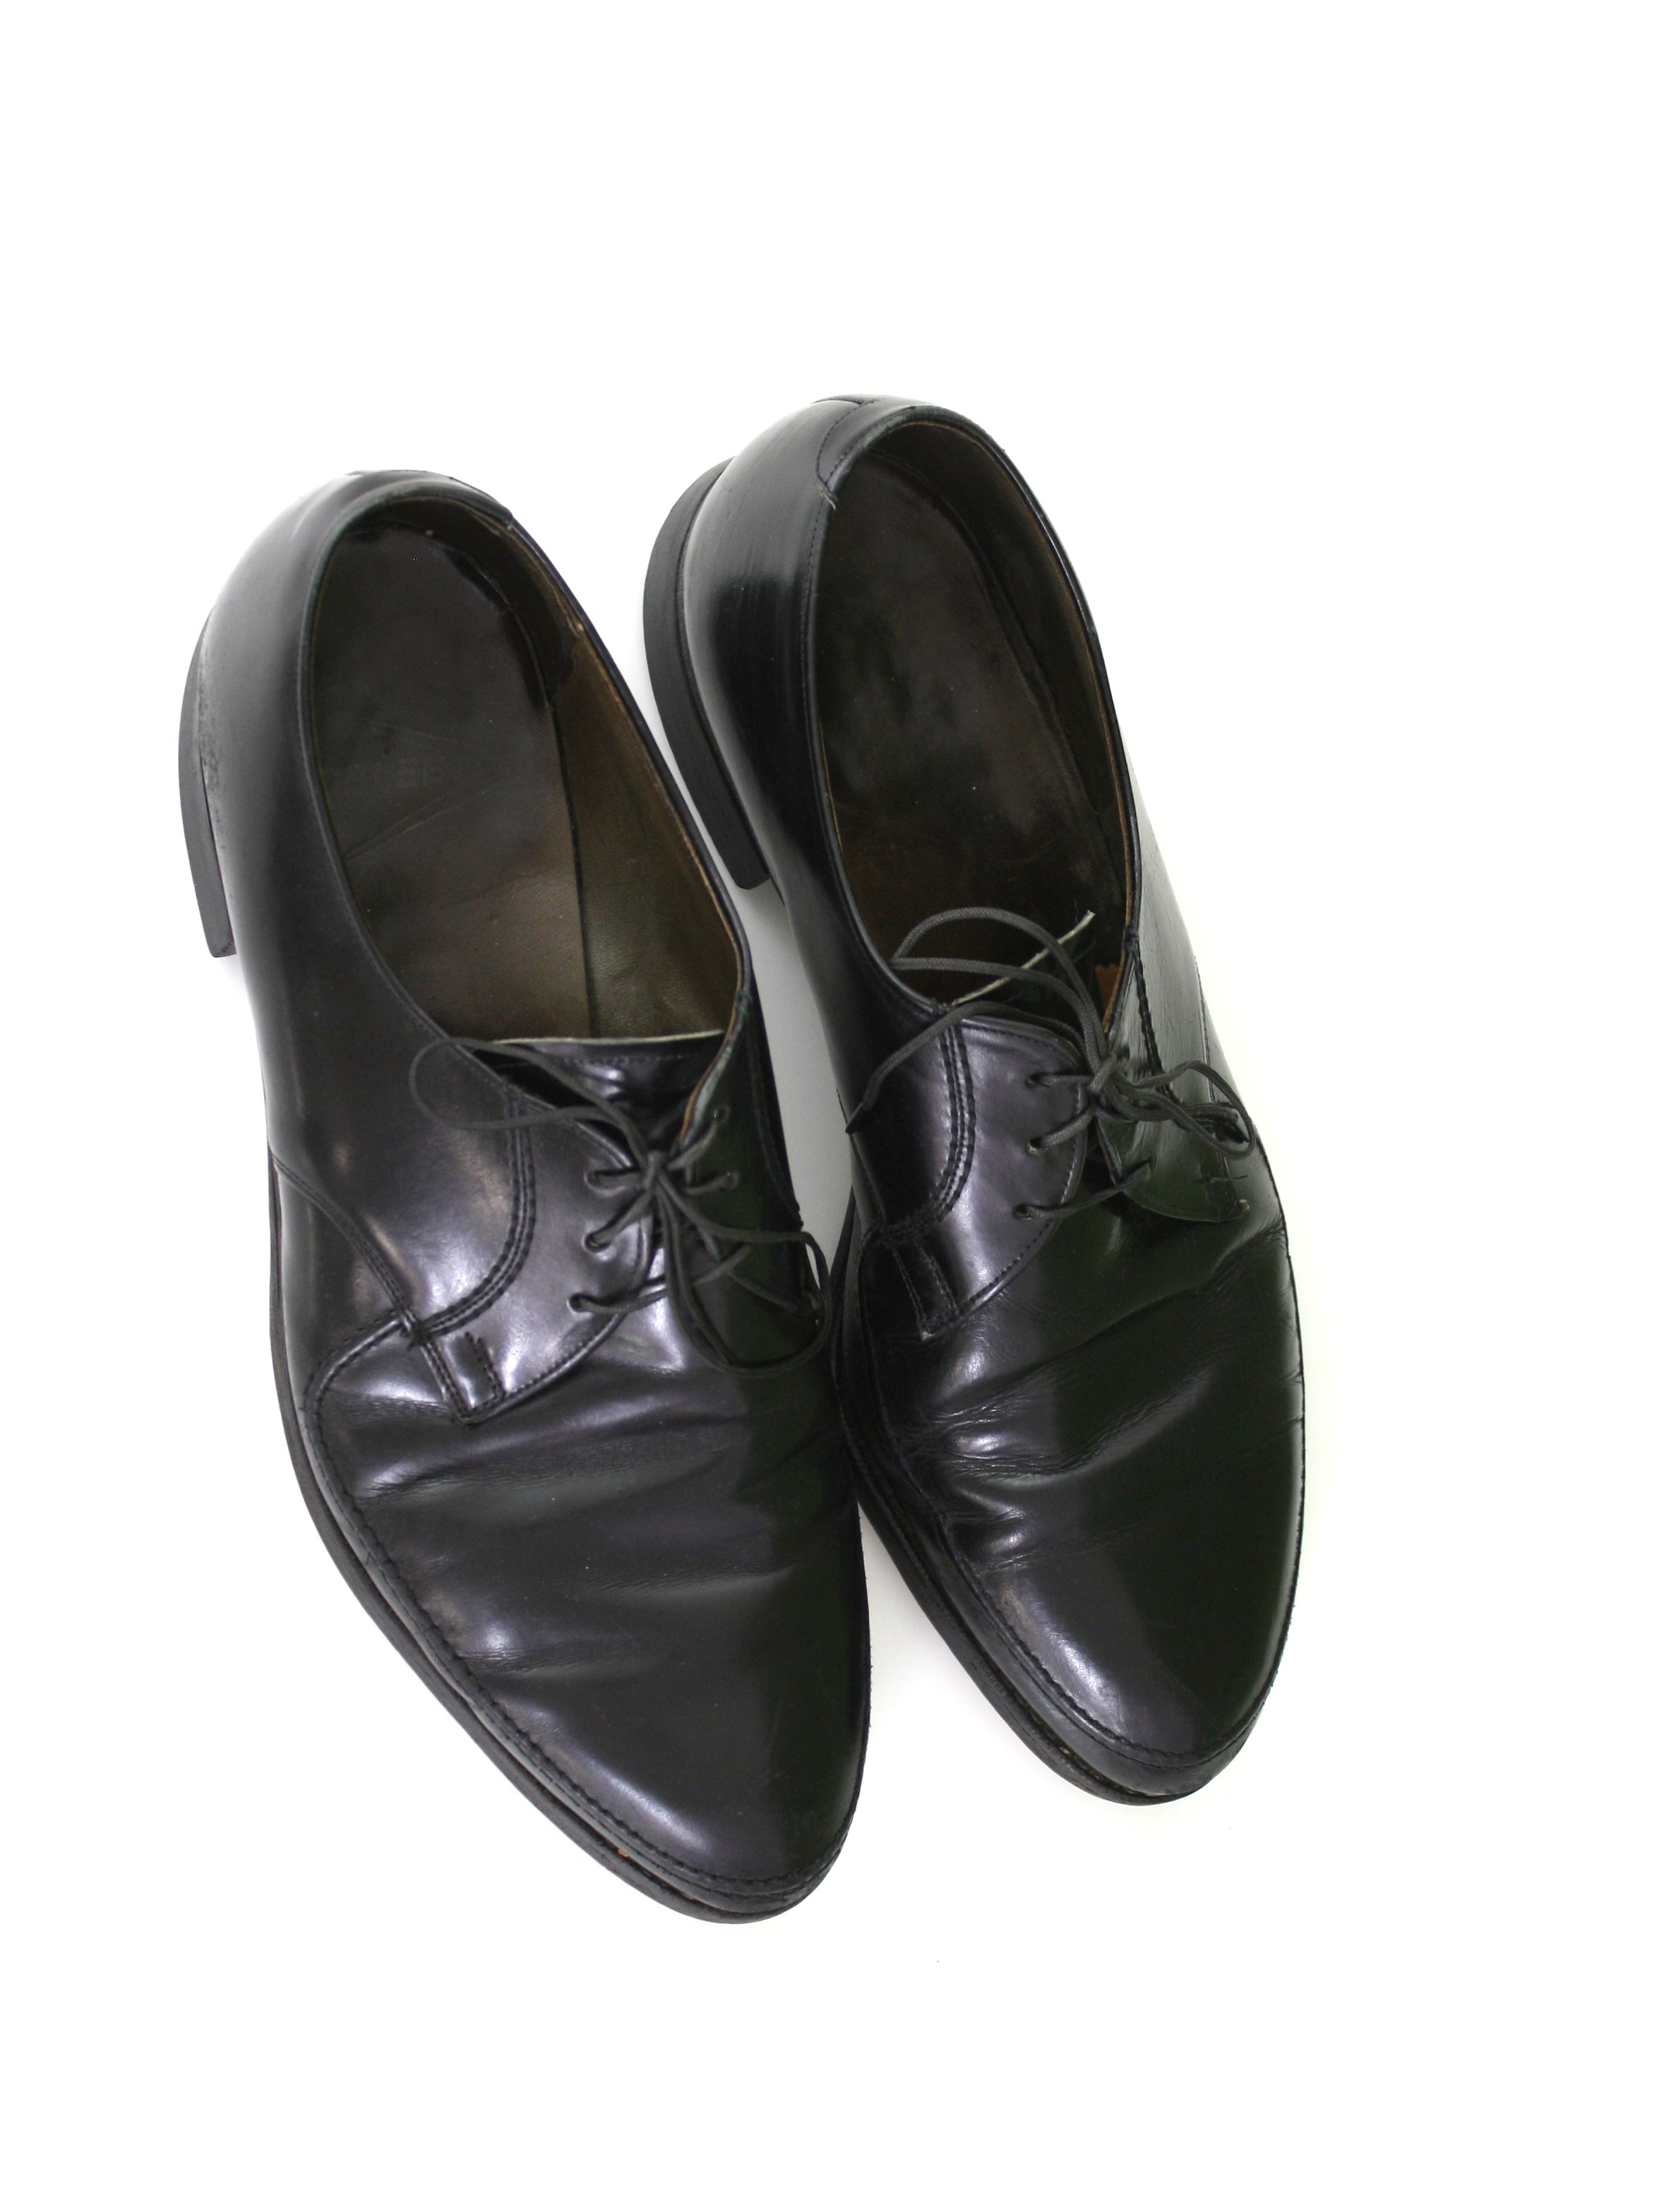 507cc9ccead 1960 s Vintage Roblee Shoes  Early 60s -Roblee- Mens black smooth ...